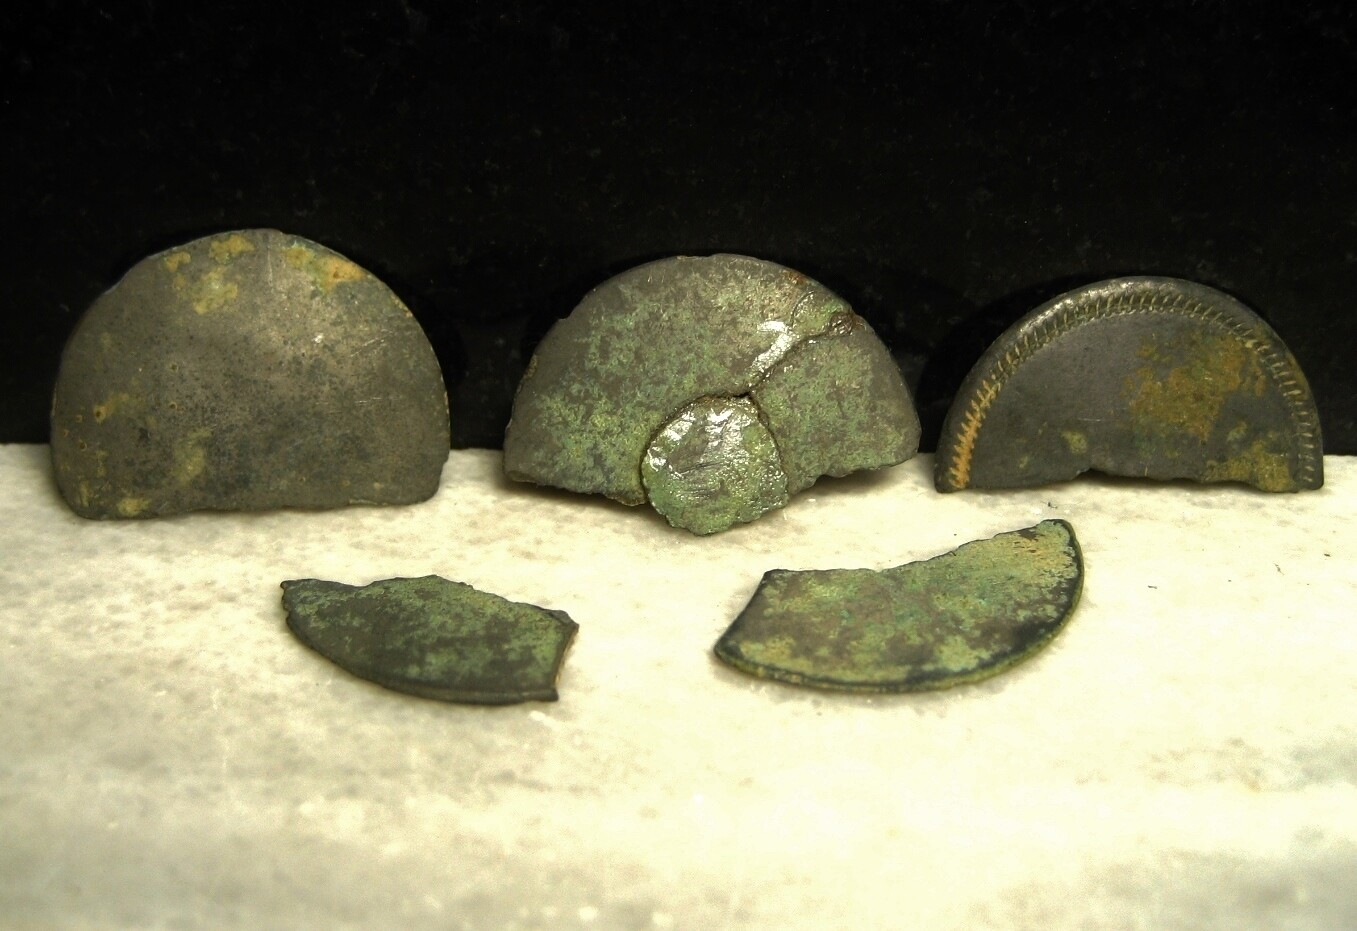 JUST ADDED ON 4/8 - THE BATTLE OF ANTIETAM / DUNKER CHURCH - Pewter Button Fragments